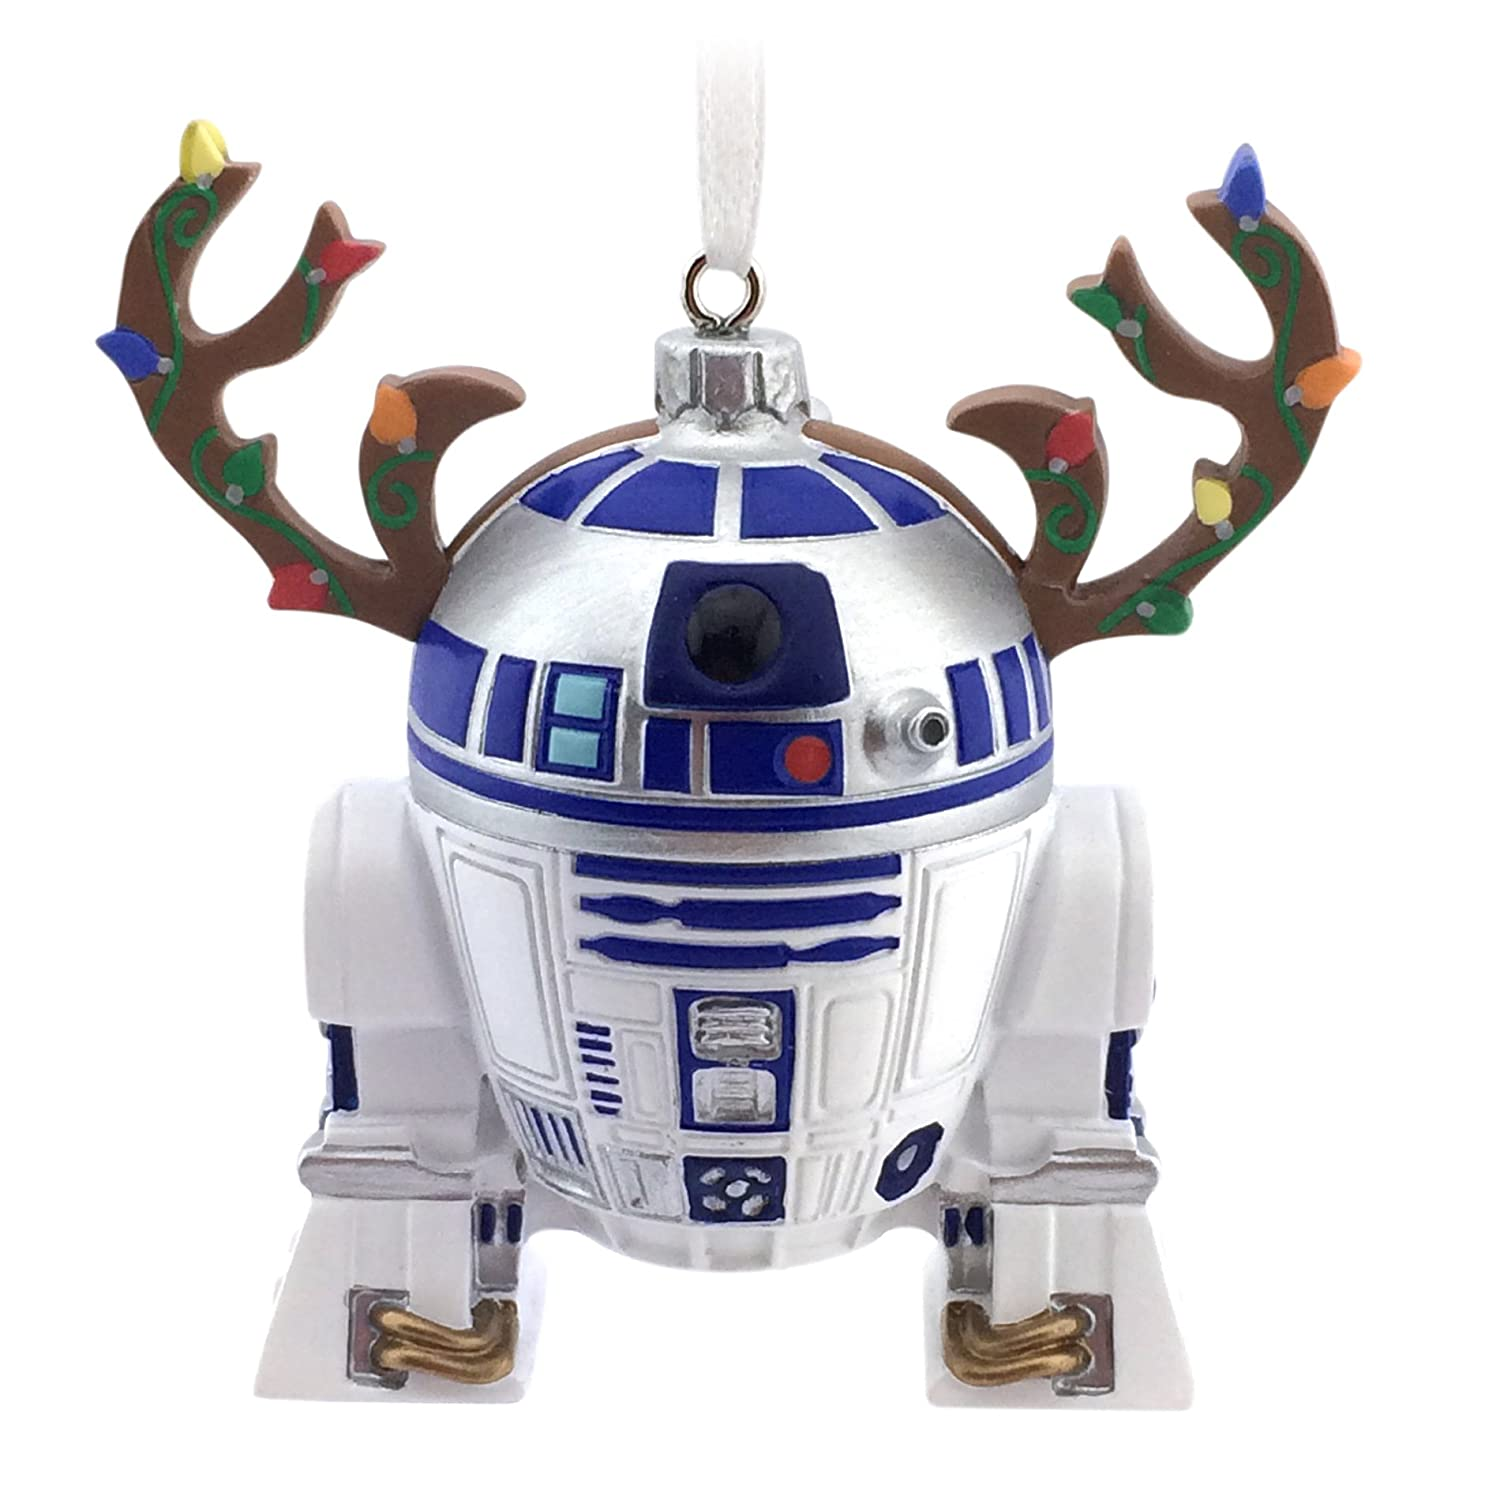 amazoncom hallmark lucasfilm star wars r2d2 ornament home kitchen - Star Wars Christmas Decorations